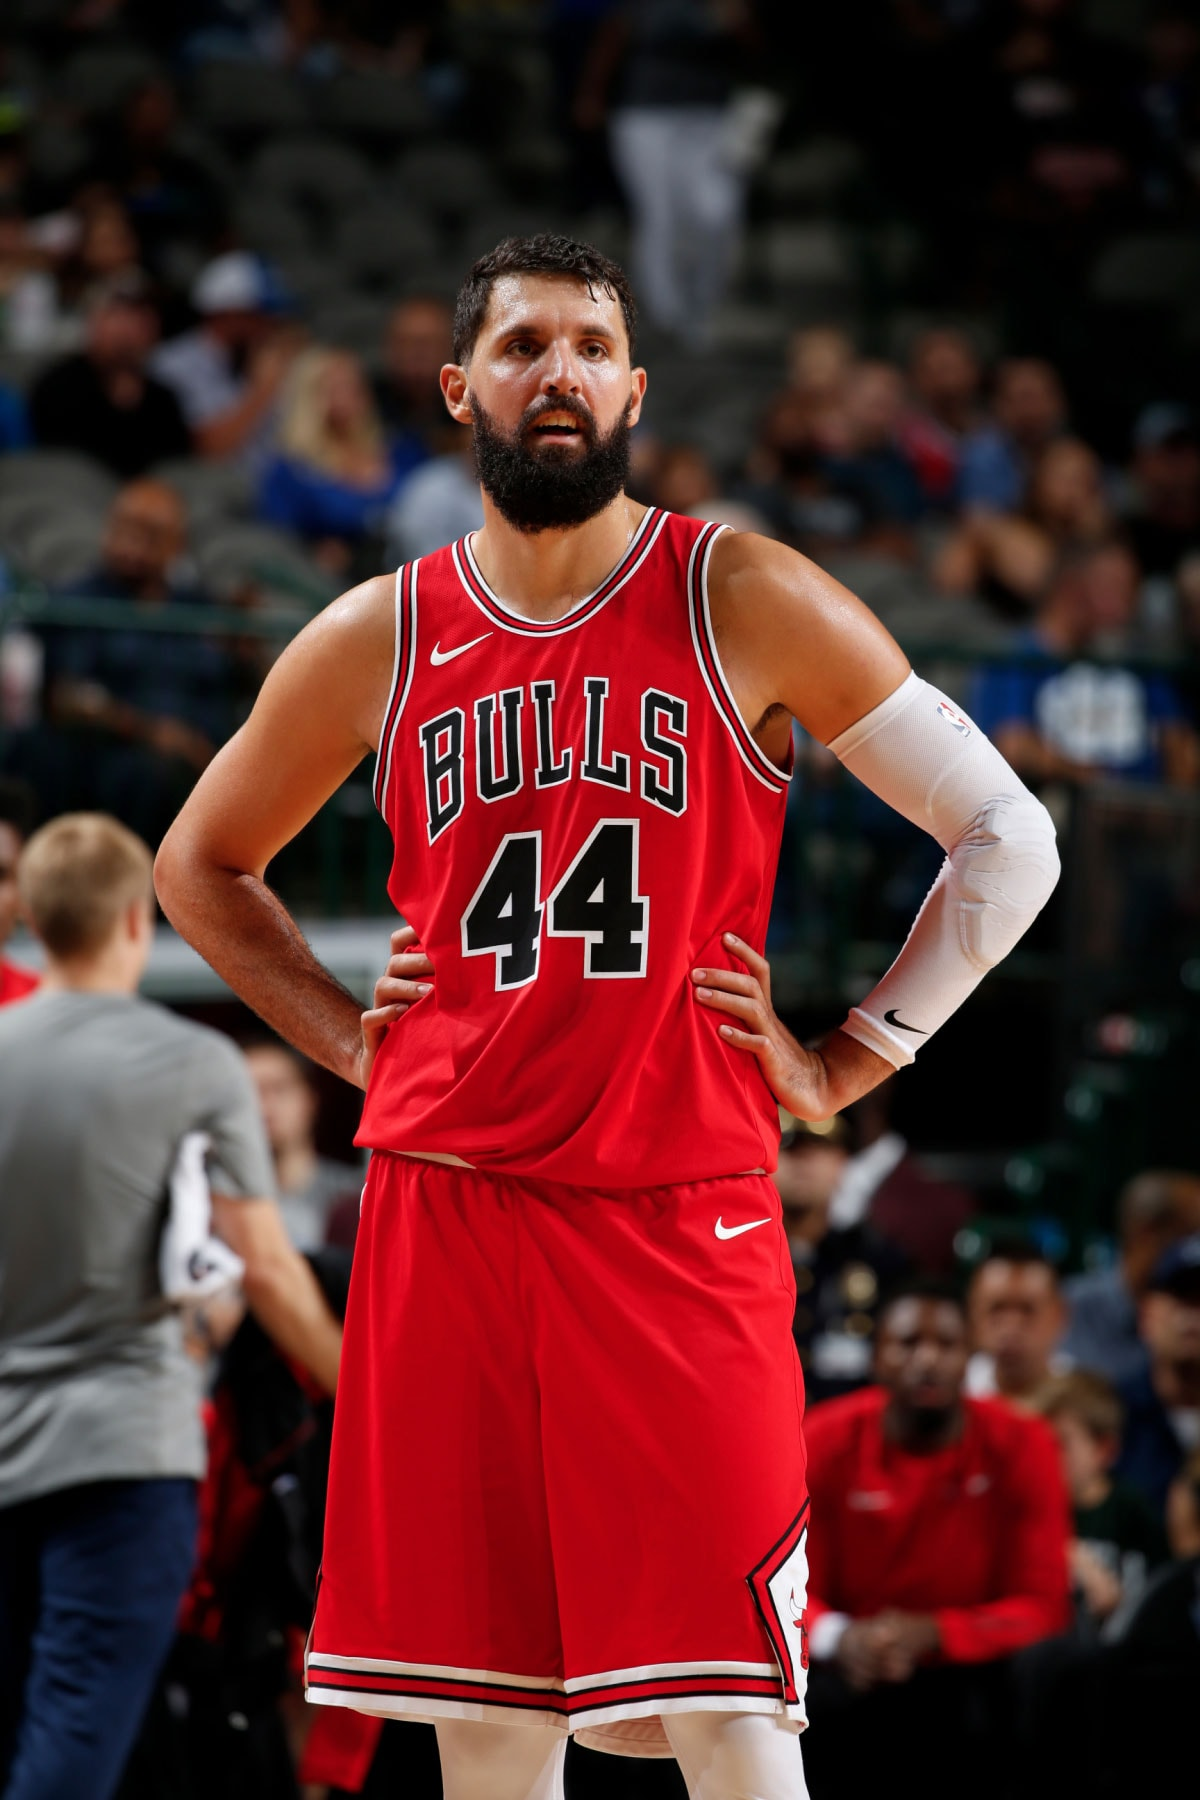 Nikola Mirotic #44 of the Chicago Bulls looks on during the game against the Dallas Mavericks on October 4, 2017 at the American Airlines Center in Dallas, Texas.